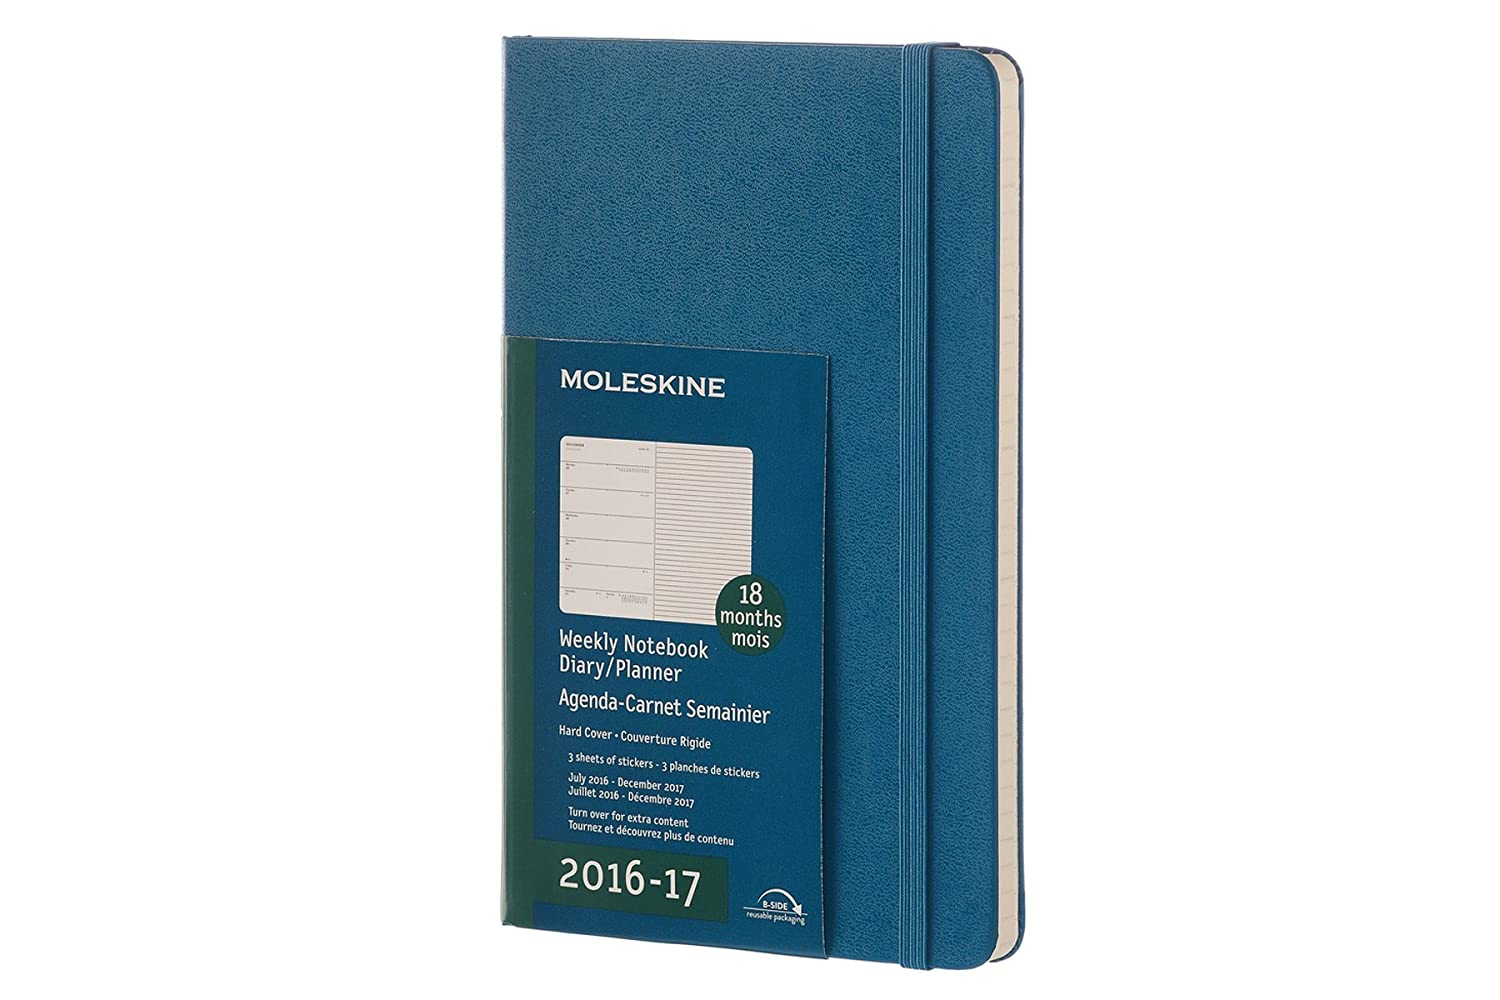 Moleskine 2016-2017 Weekly Notebook, 18M, Large, Steel Blue, Hard Cover (5 x 8.25)